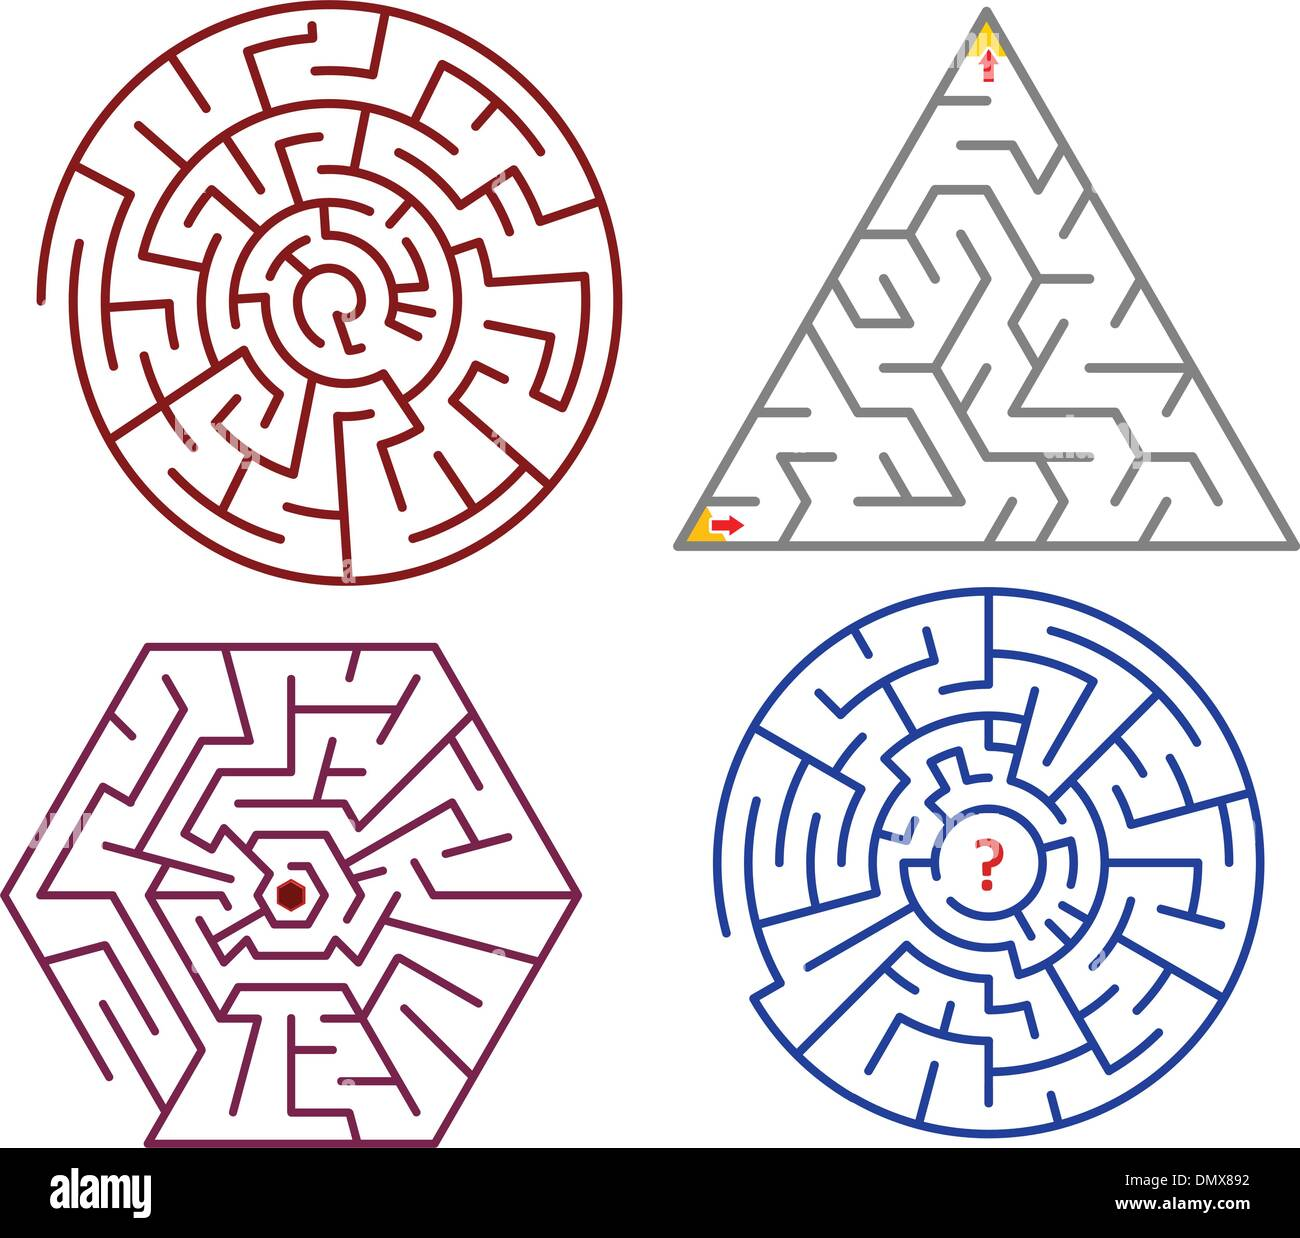 Mazes collections - Stock Image